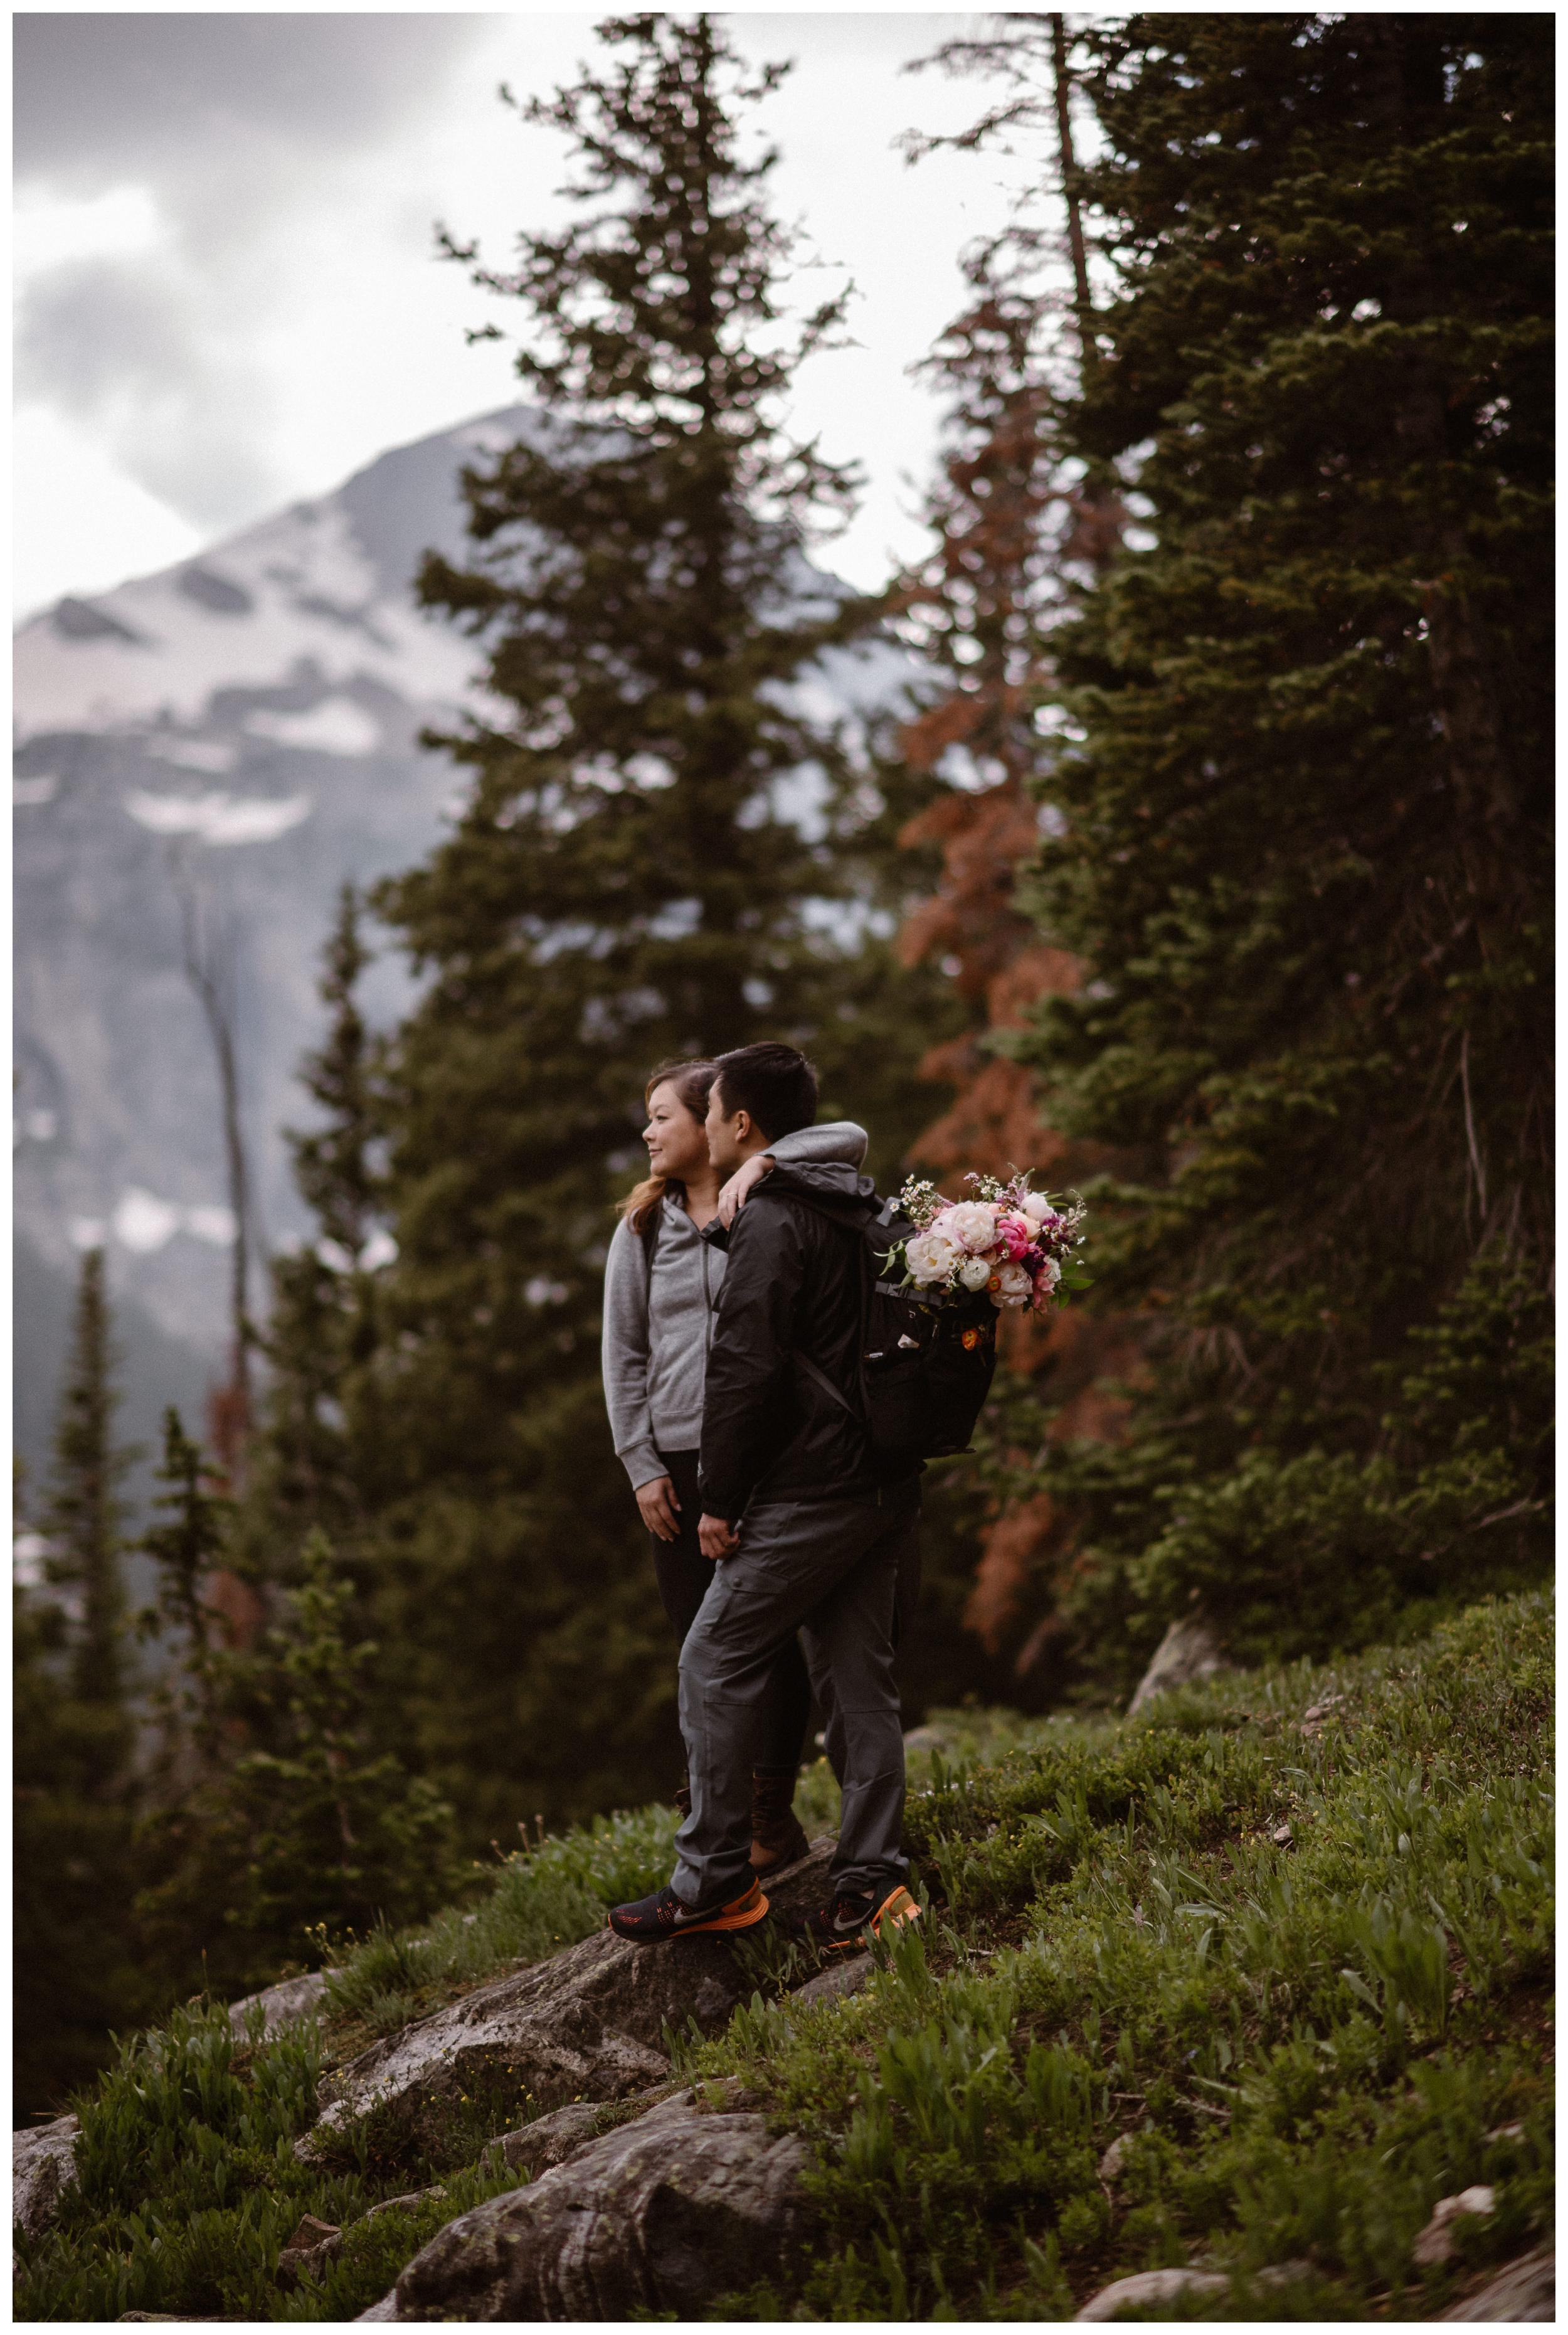 Leslie and Jinson stop as they hike up the Gem Lake Trail for their hiking adventure elopement ceremony to survey the Rocky Mountains. Photo by Maddie Mae Photo, Adventure Instead.